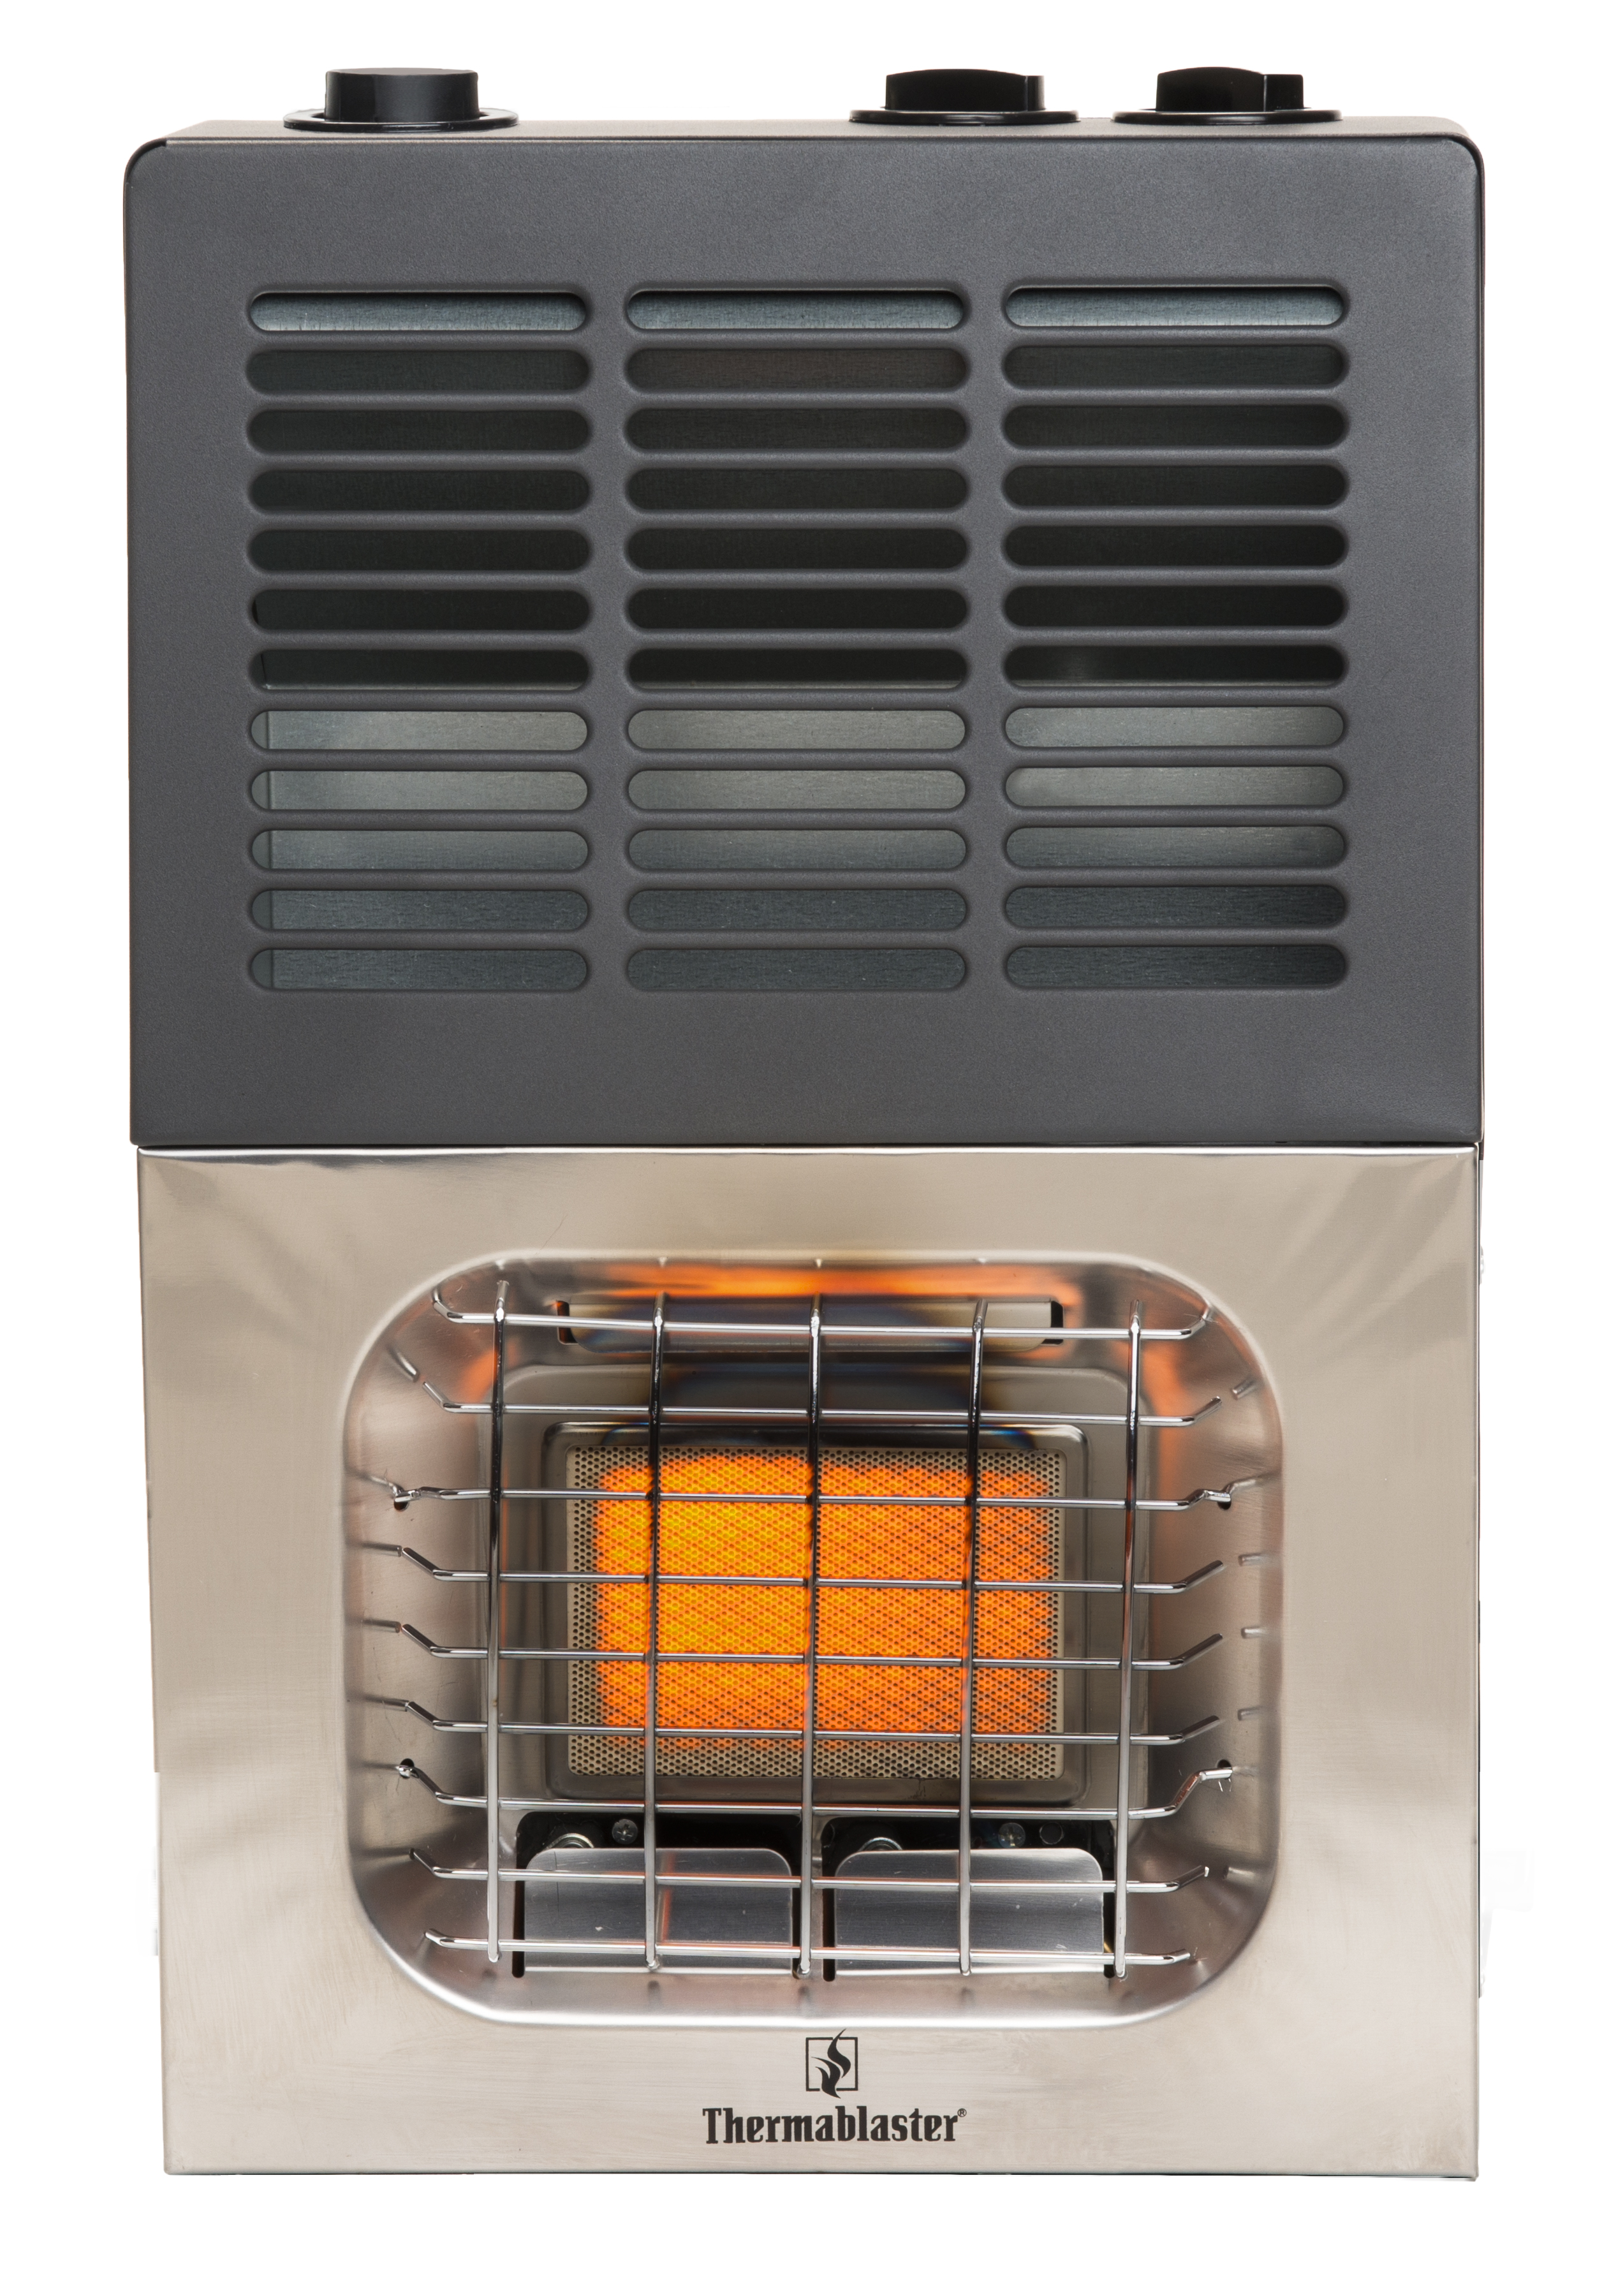 6,000 BTU Infrared Vent-Free Heater - Thermablaster